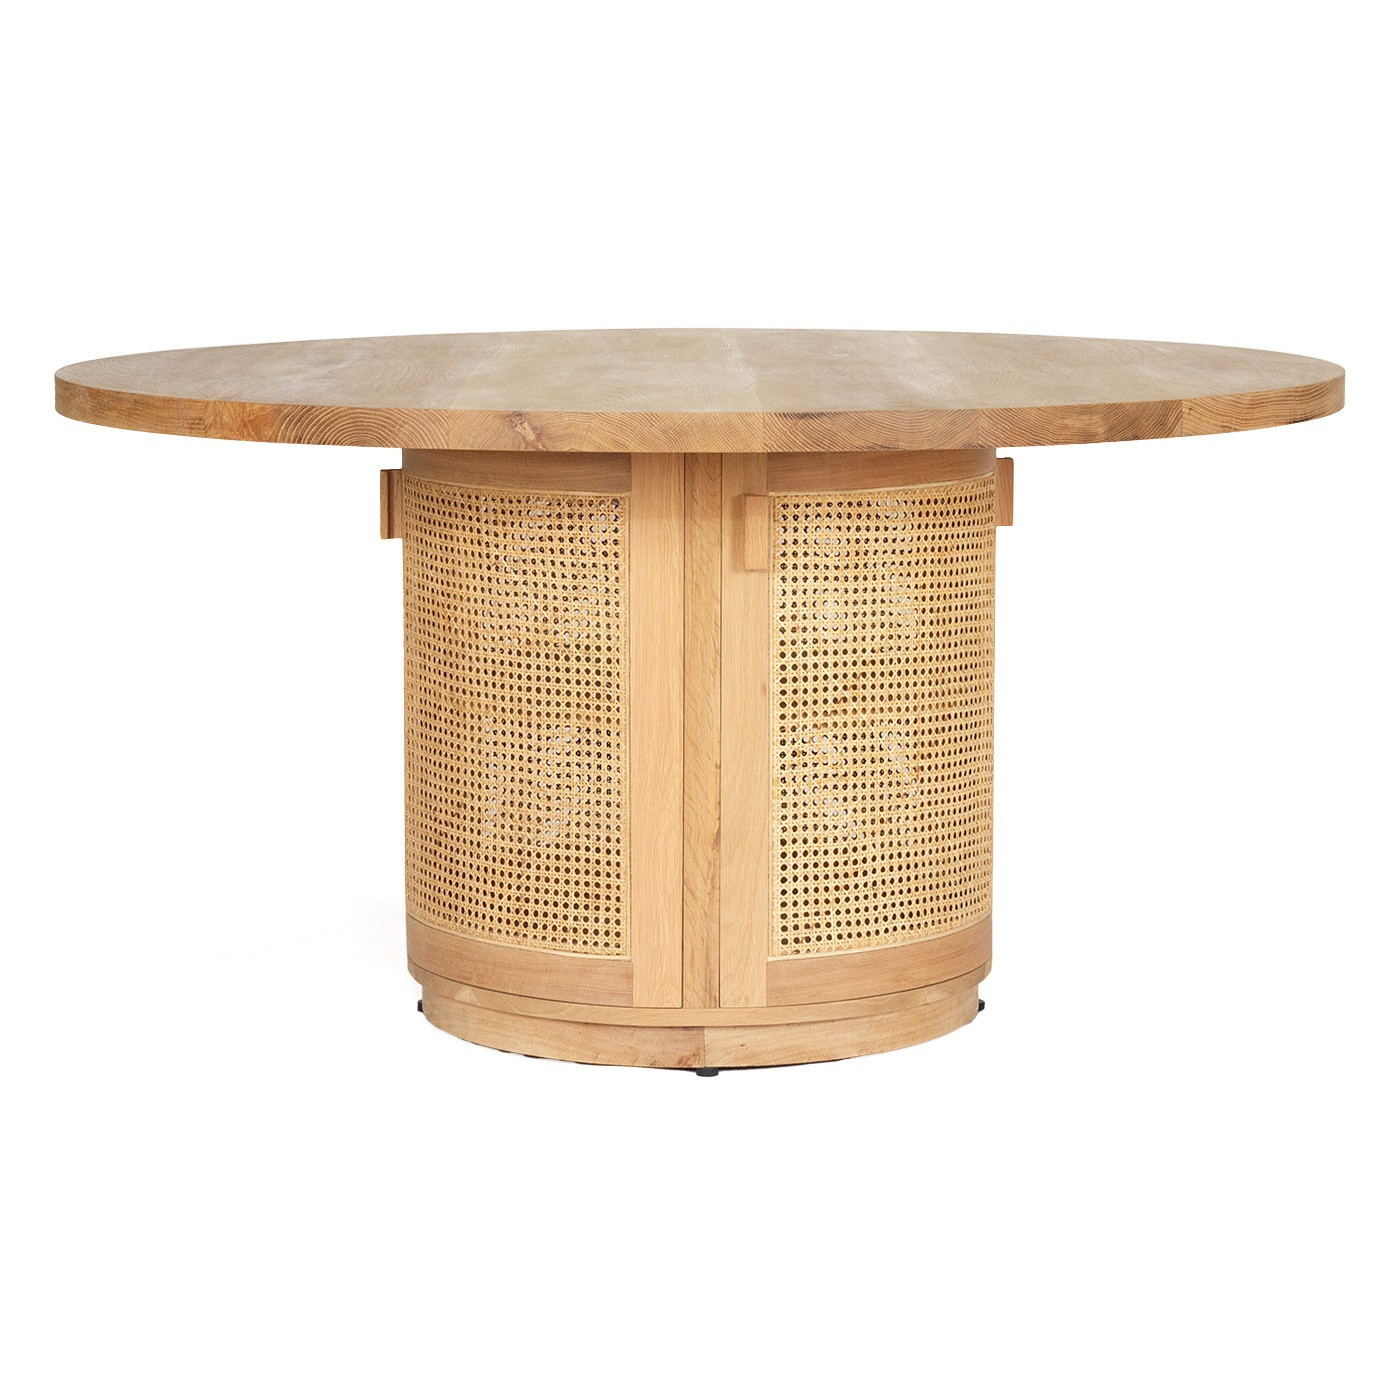 Iluka American Oak Timber & Rattan Round Dining Table, 120cm, Natural